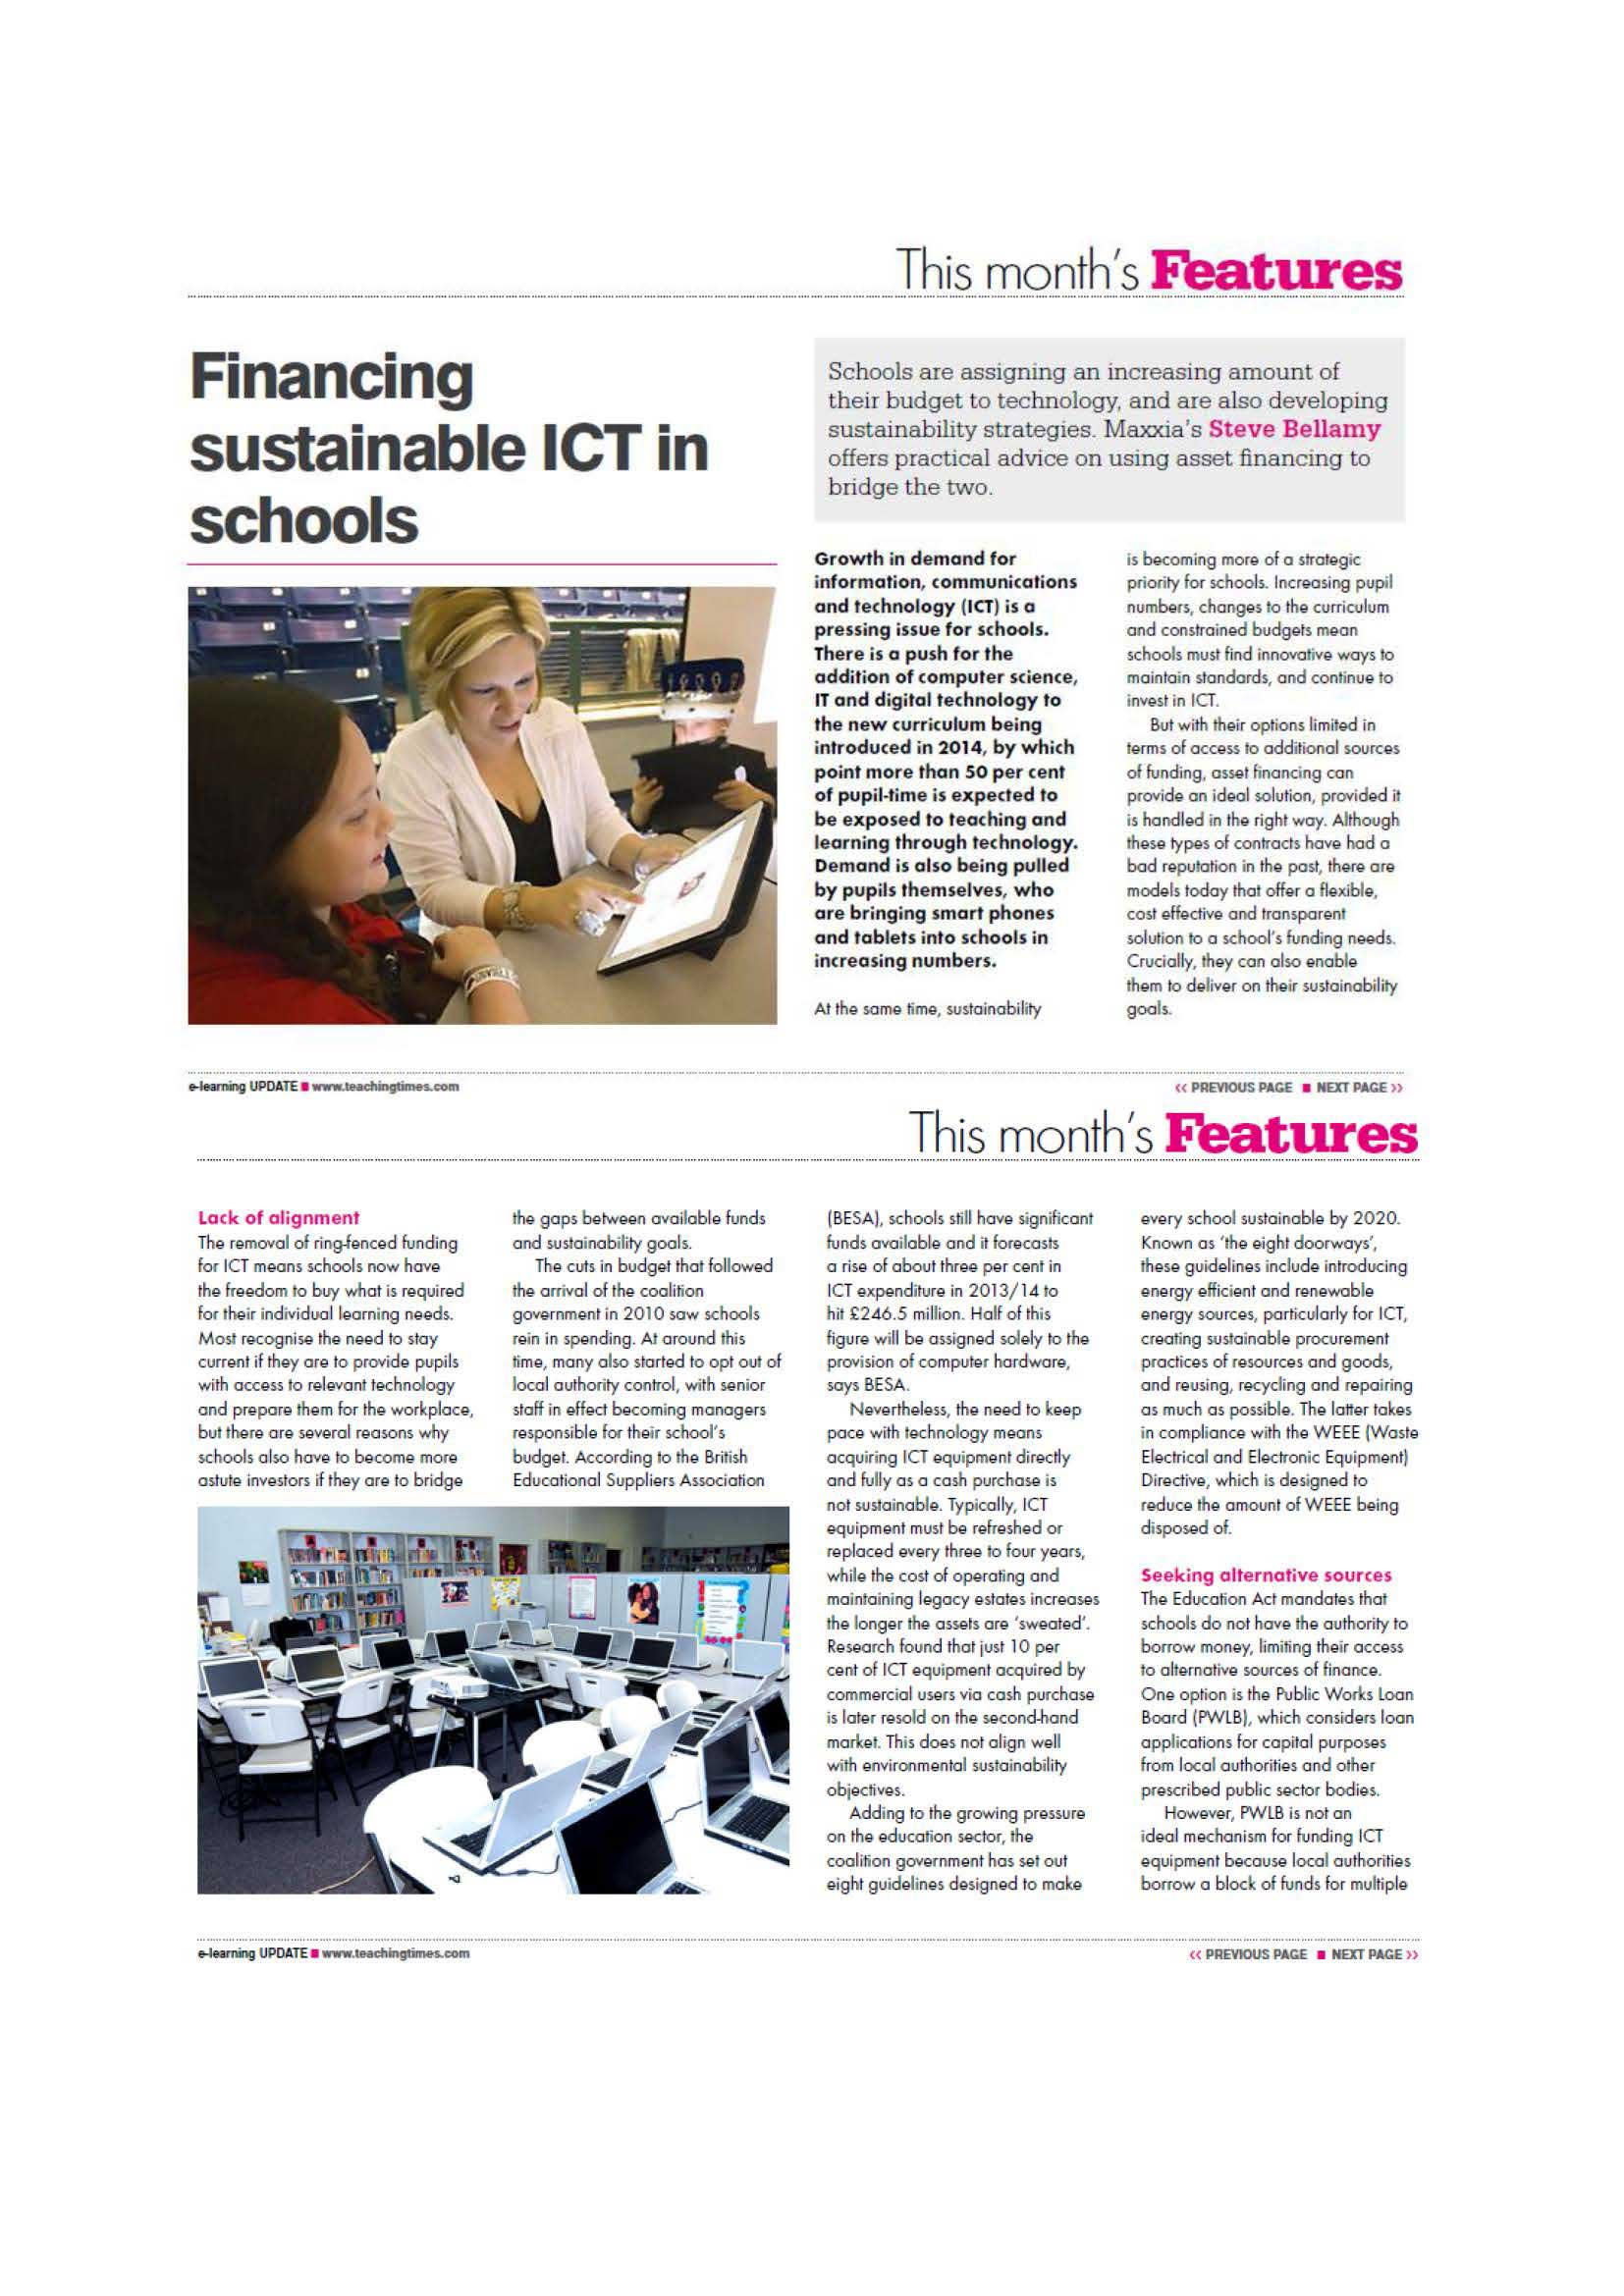 Financing sustainable ICT in schools